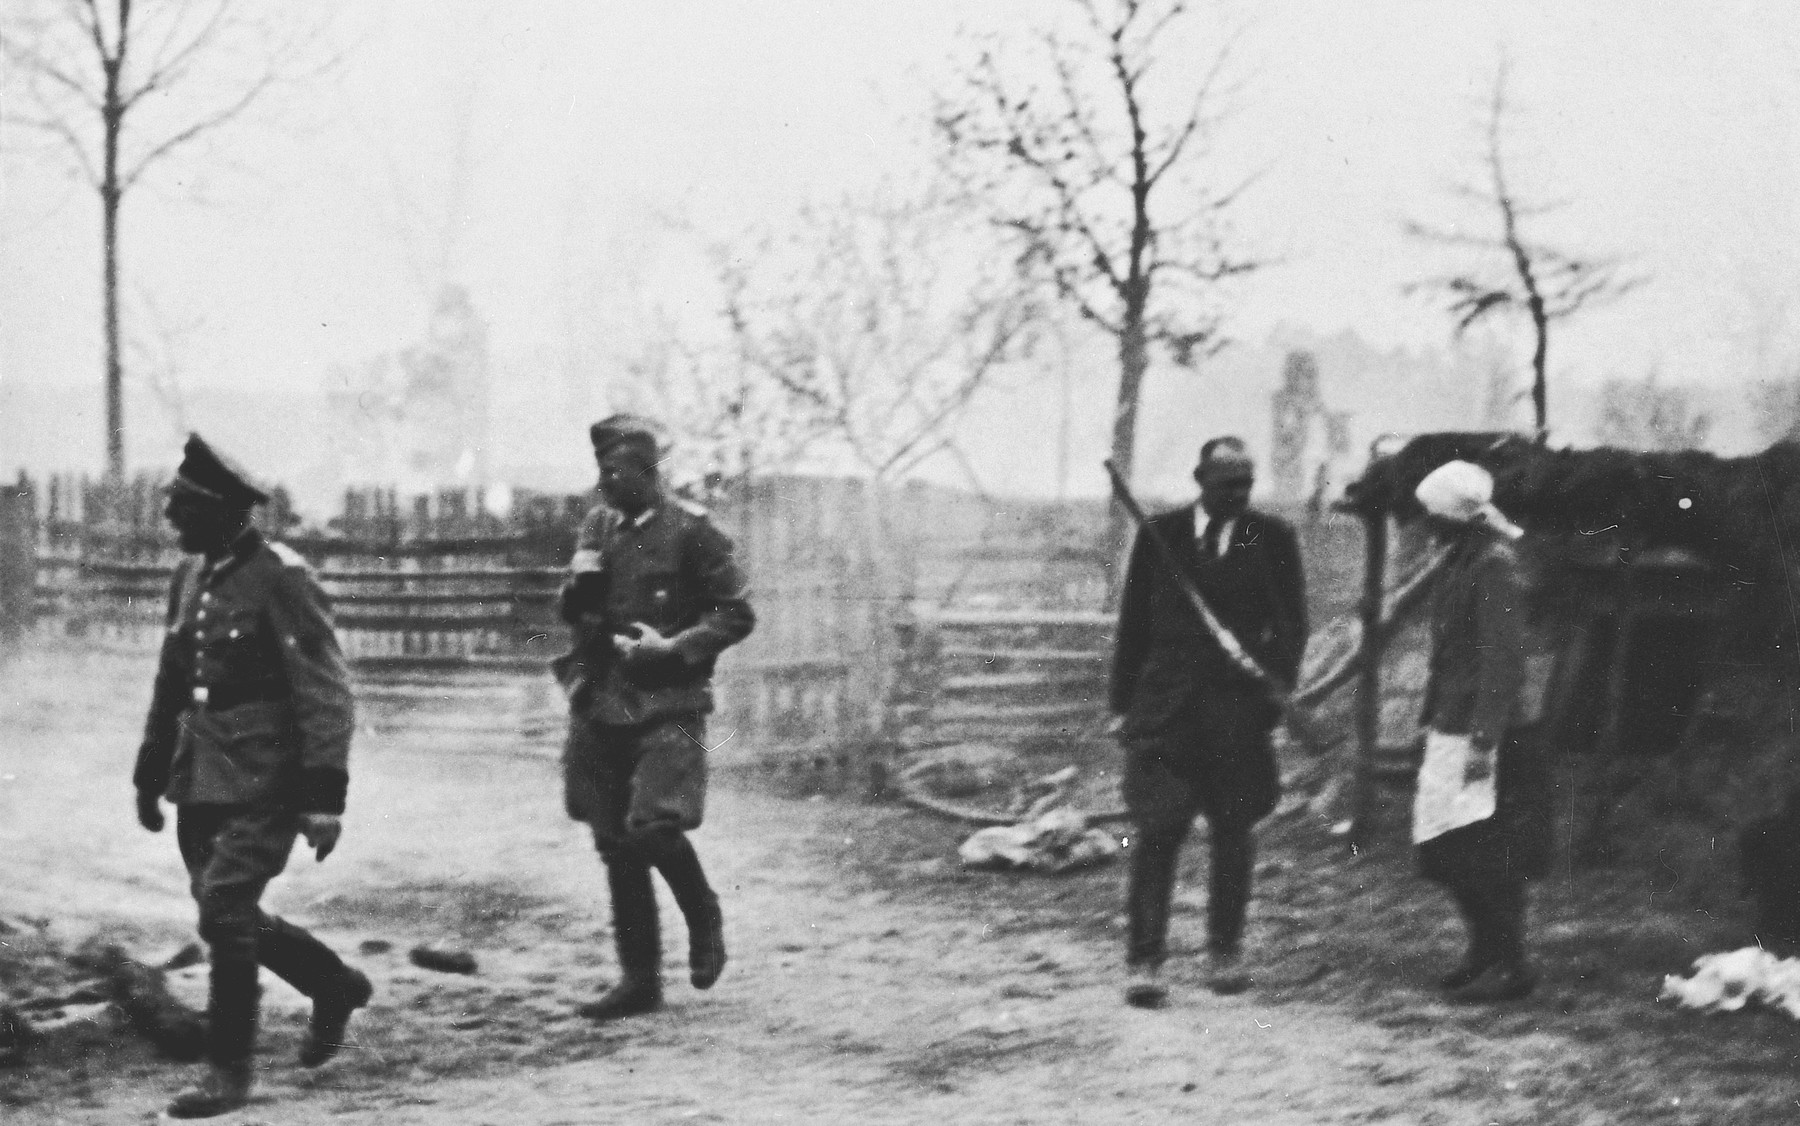 """Officers with the 1st Motorized Police Battalion in Michniow during the """"pacification"""" of the village."""